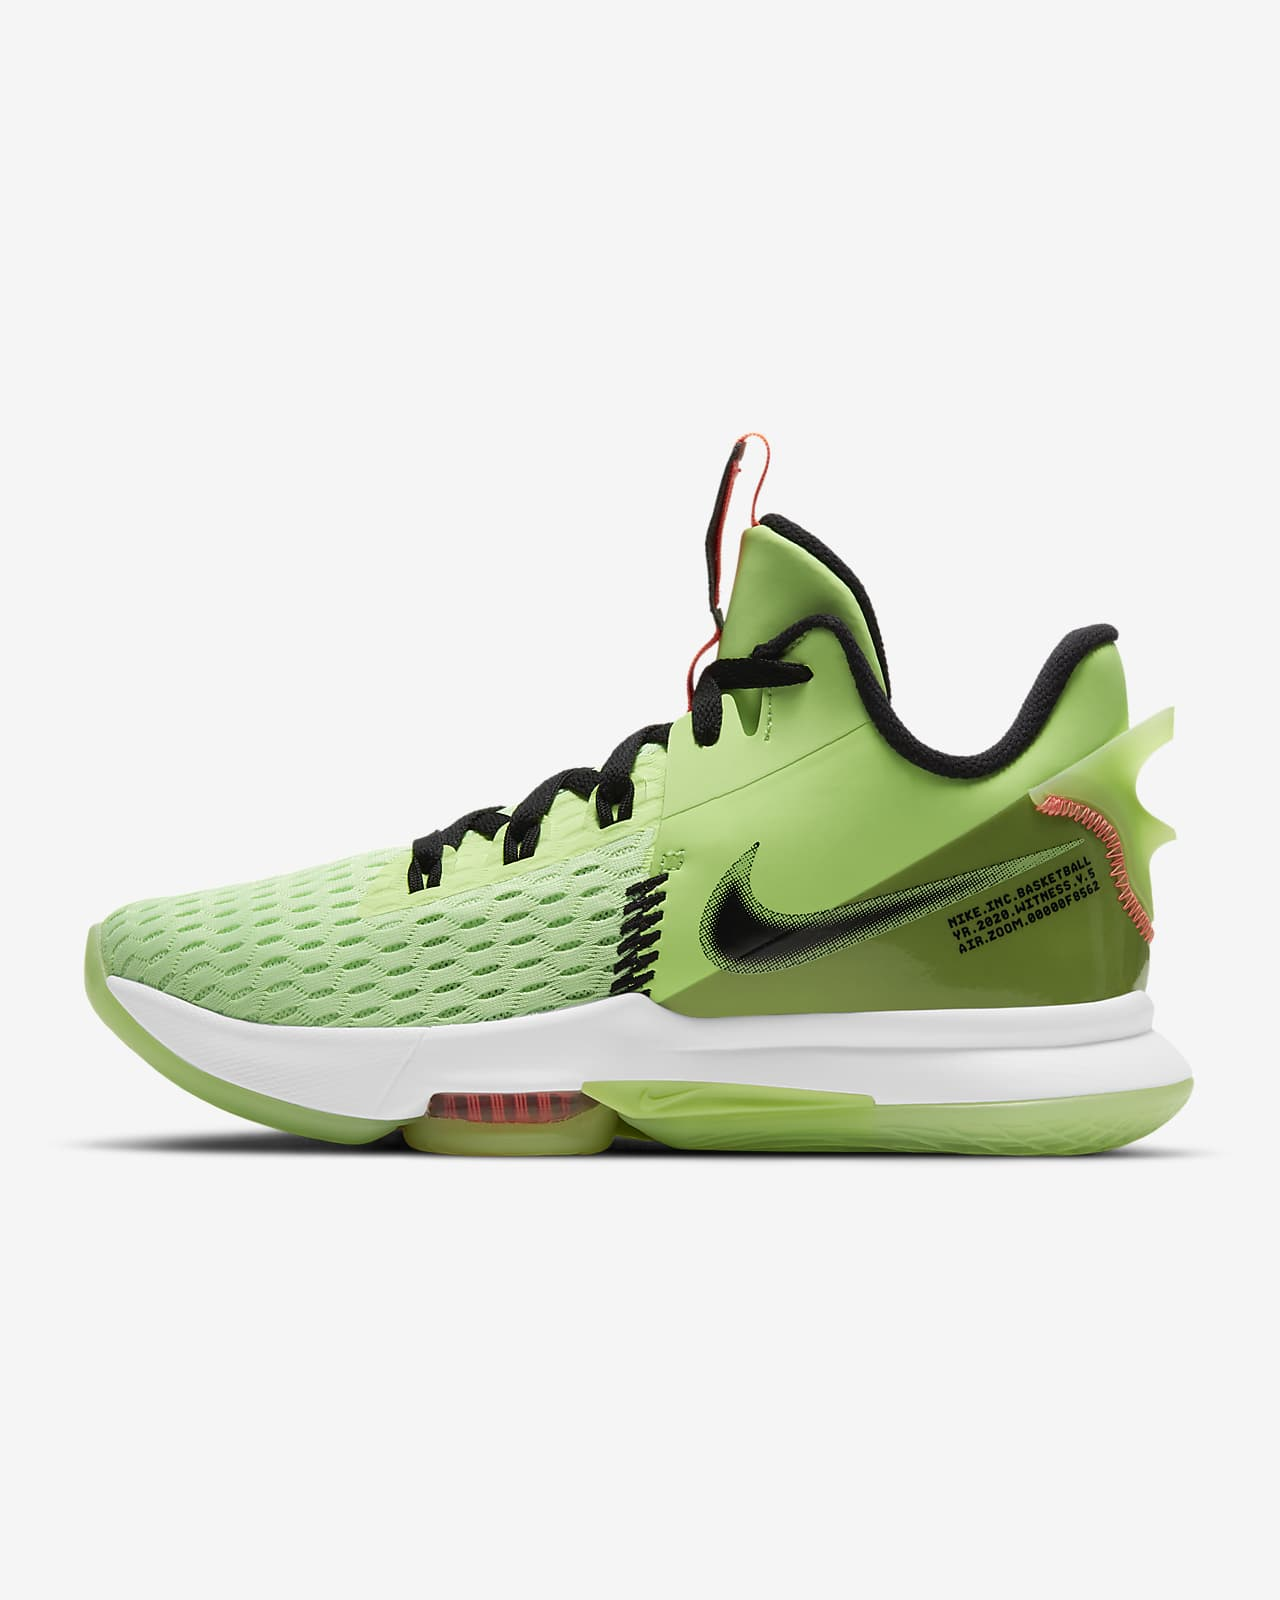 Chaussure de basketball LeBron Witness 5